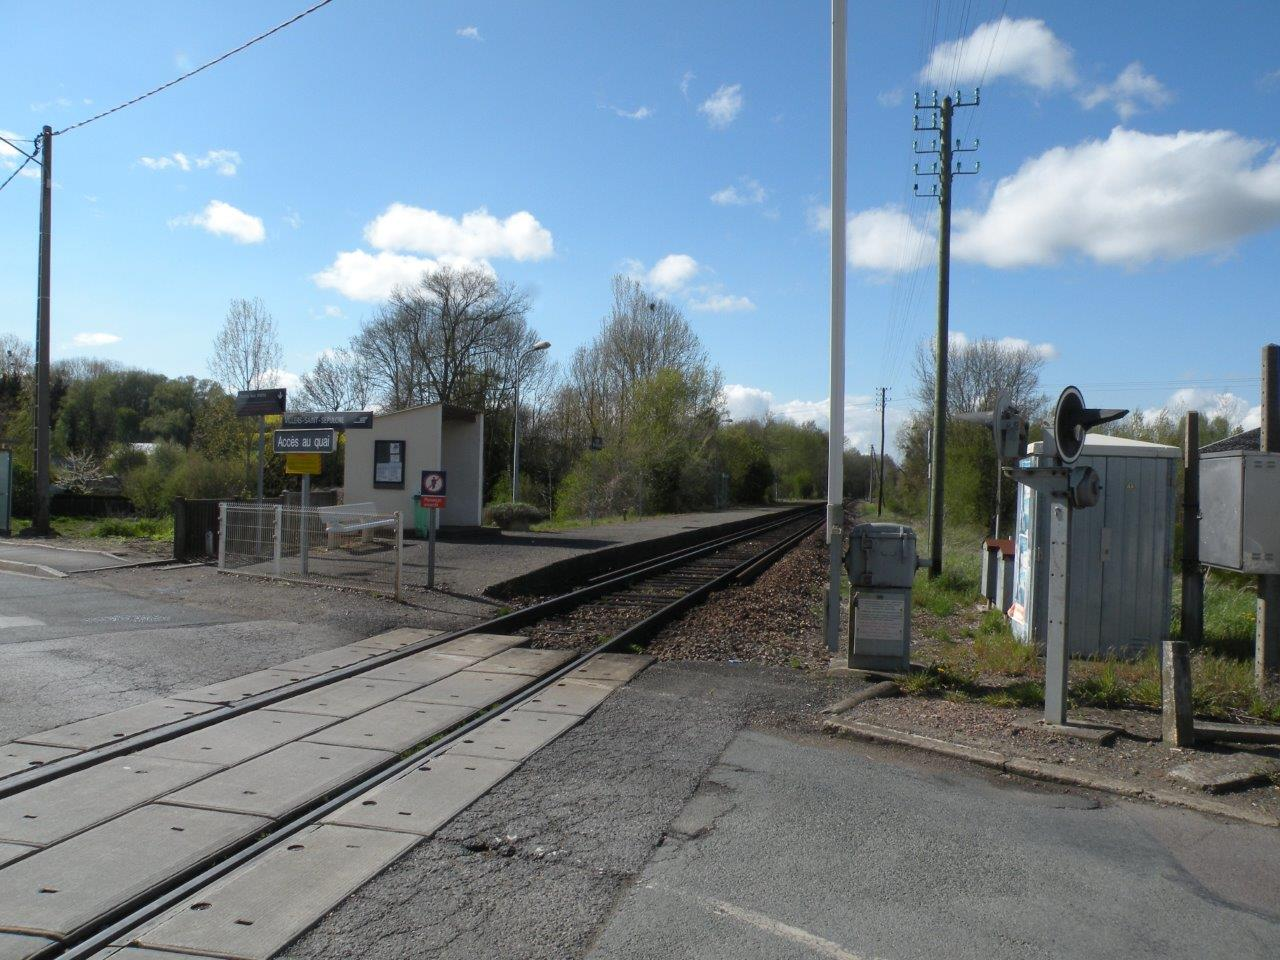 gare-de-villers-saint-paul-train-station